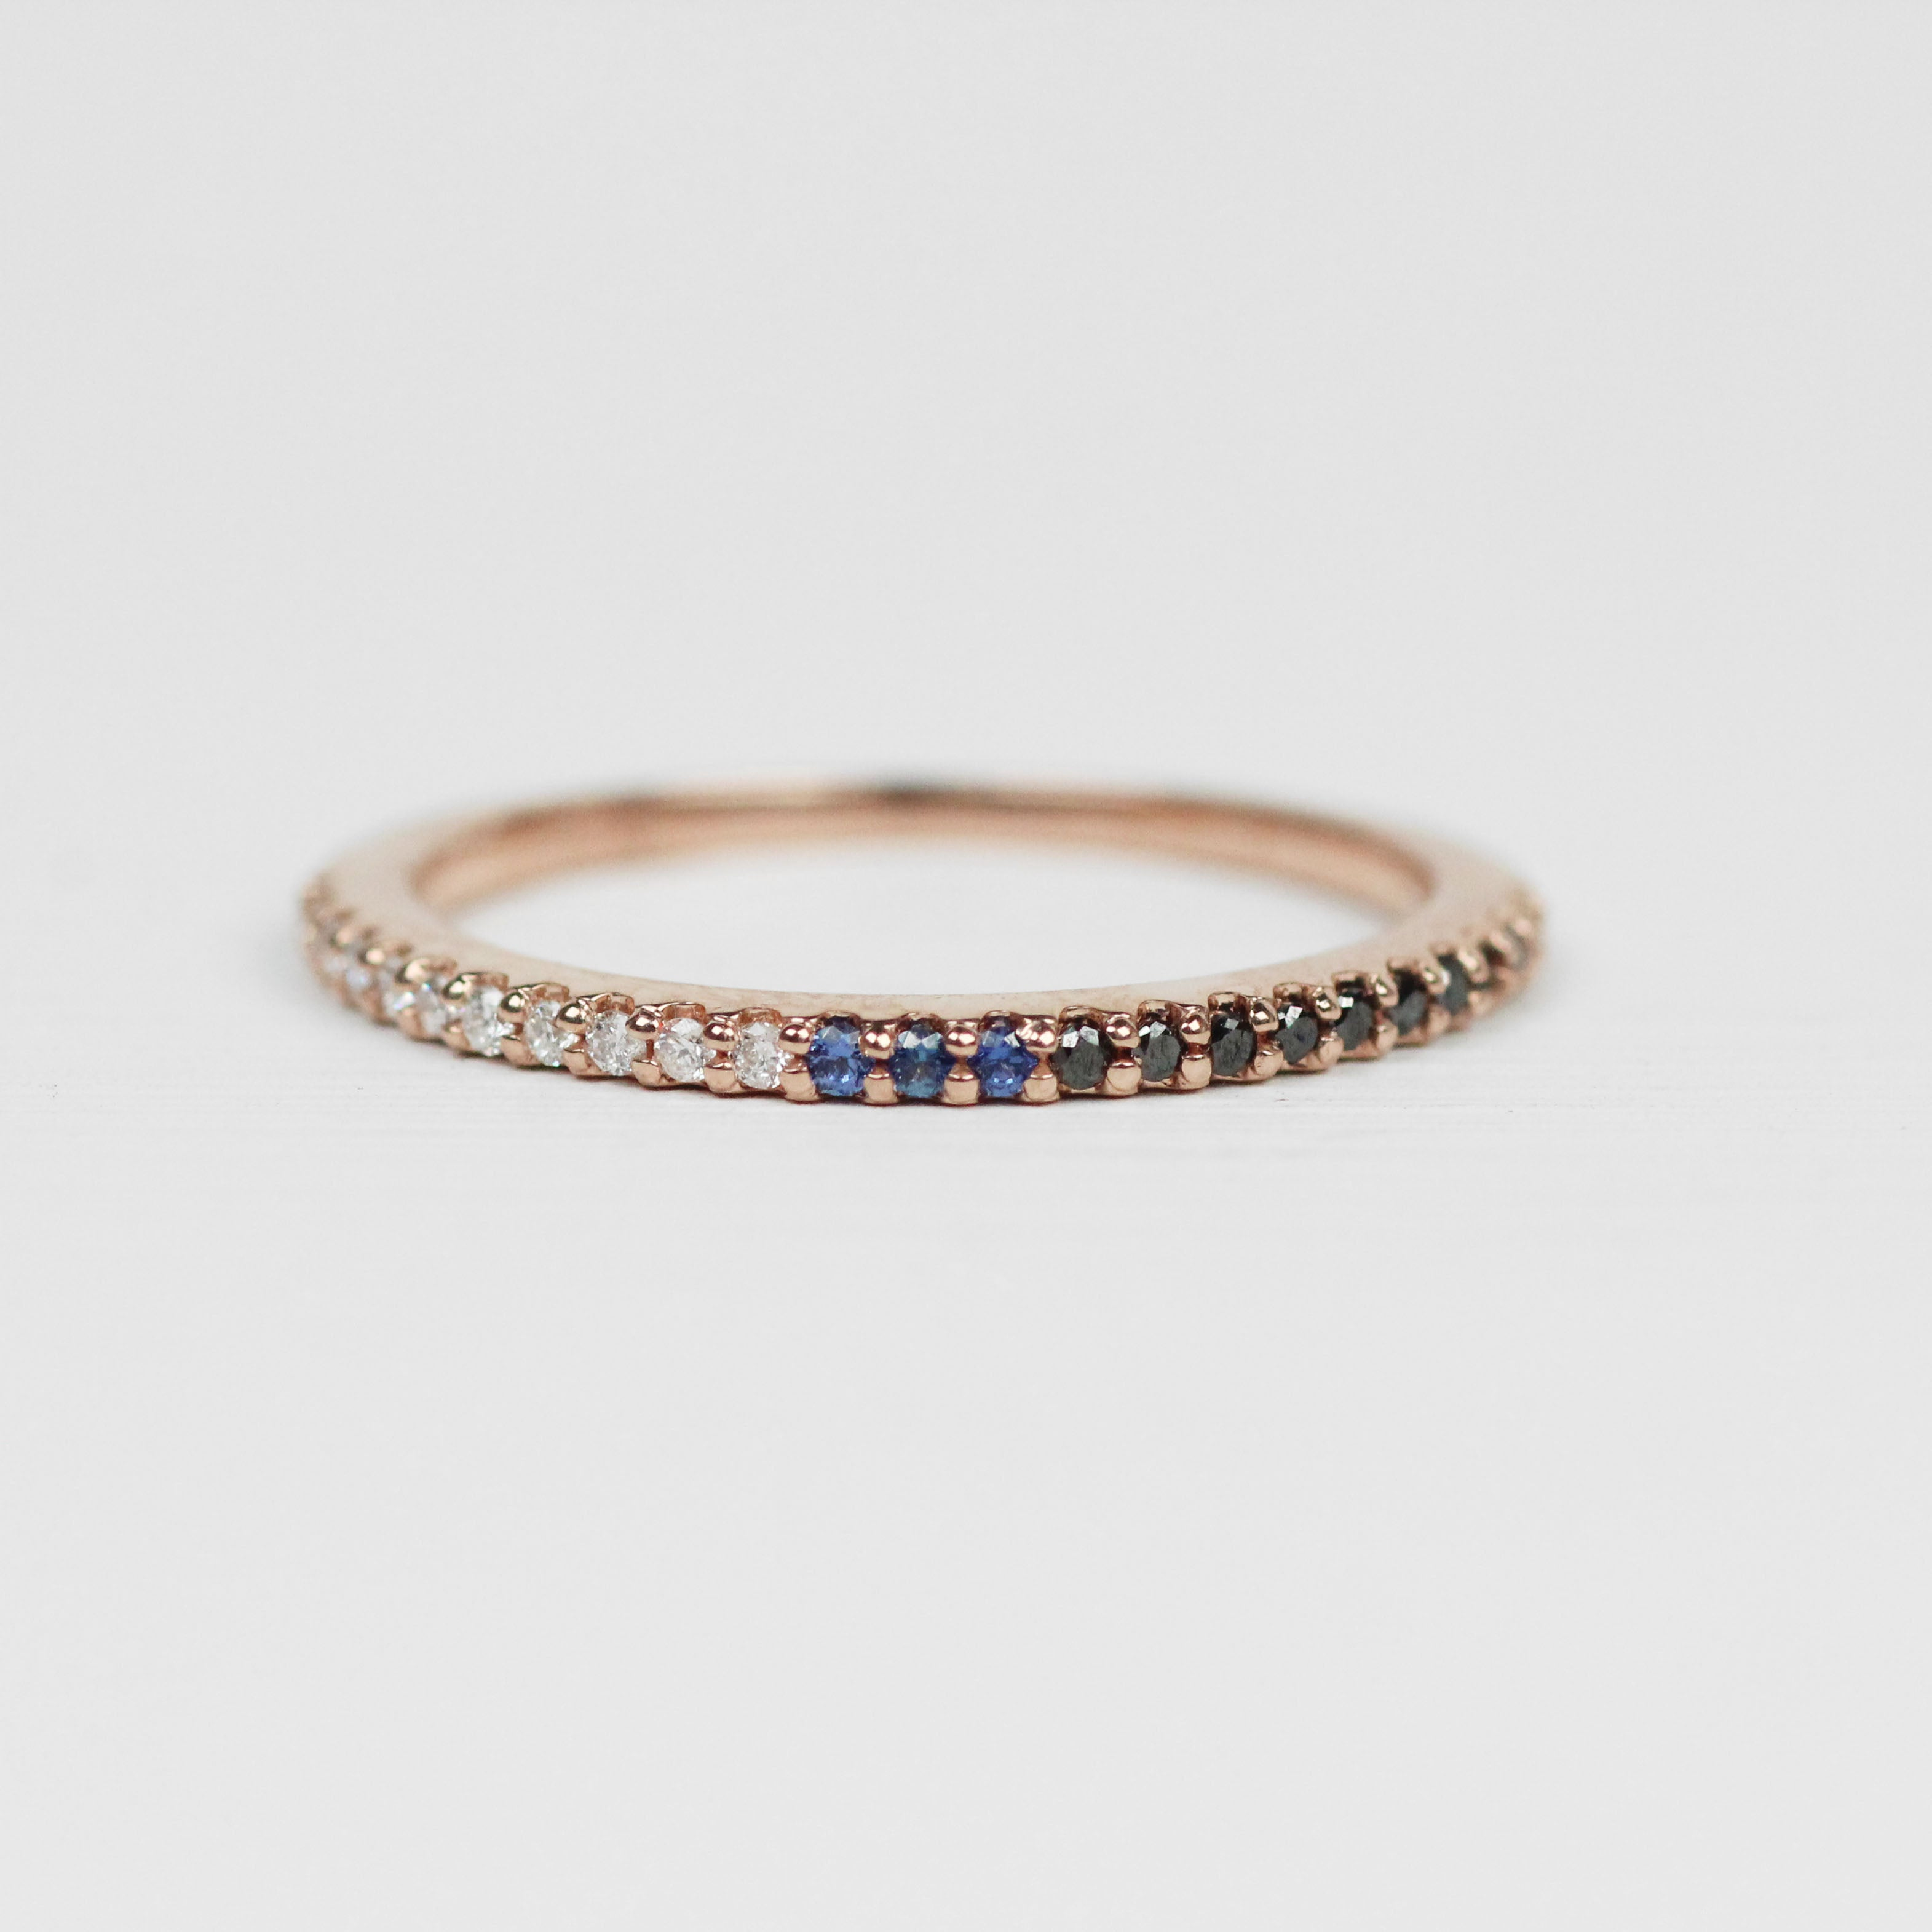 Multi-toned Constance - Pave set, minimal diamond wedding stacking band - Midwinter Co. Alternative Bridal Rings and Modern Fine Jewelry